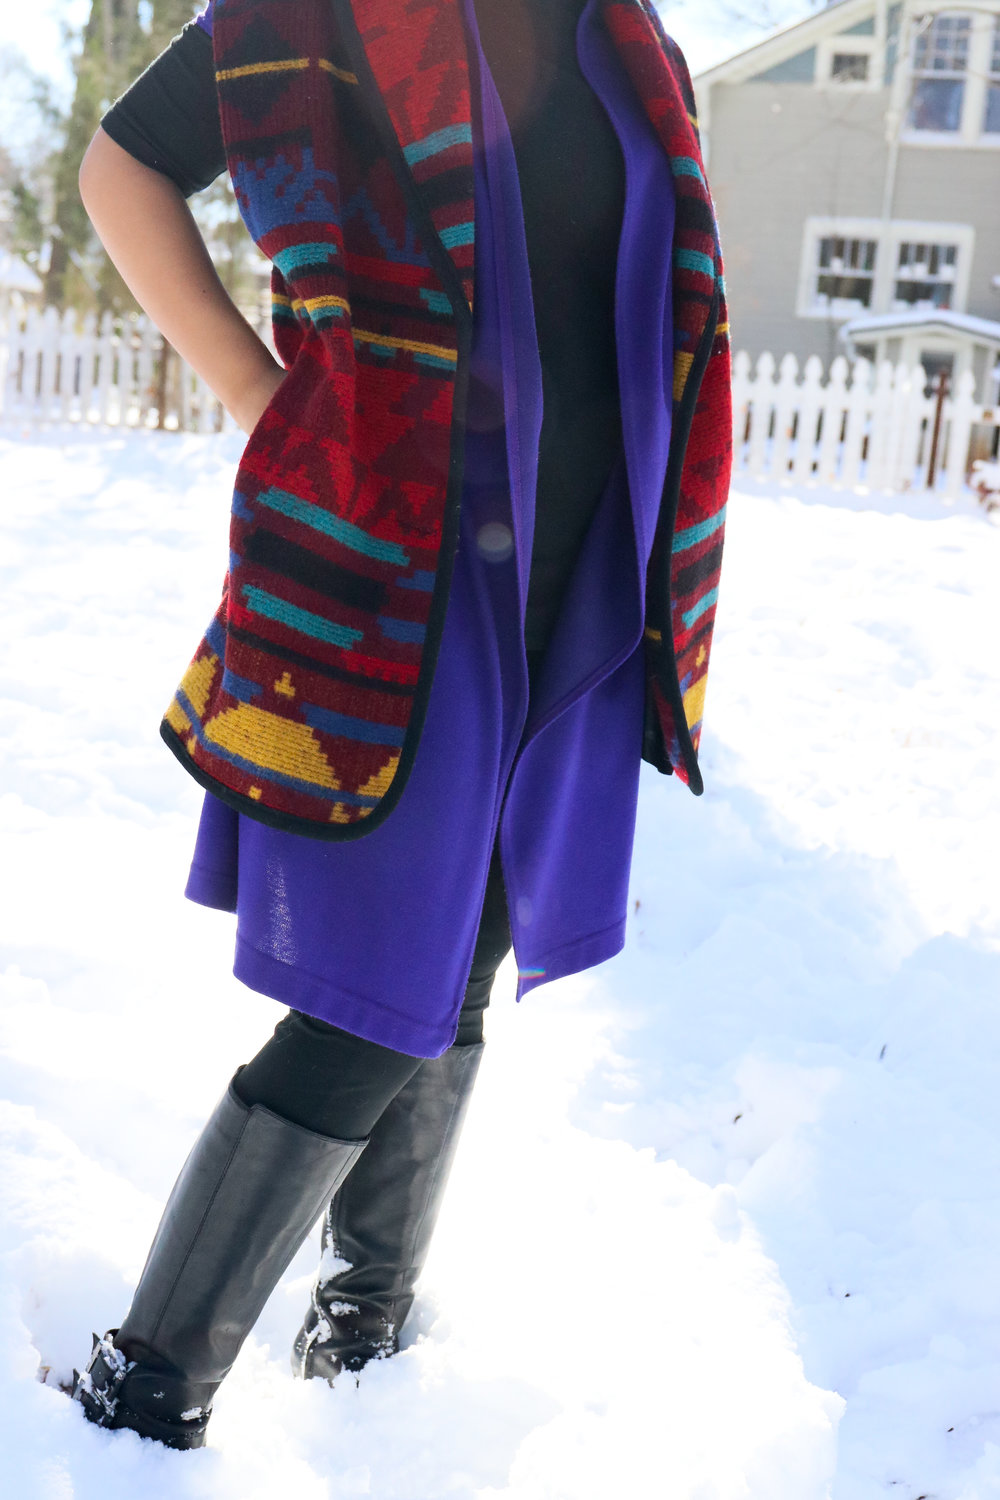 Fort Lily SNOW - 4 Layered Styles-20.jpg